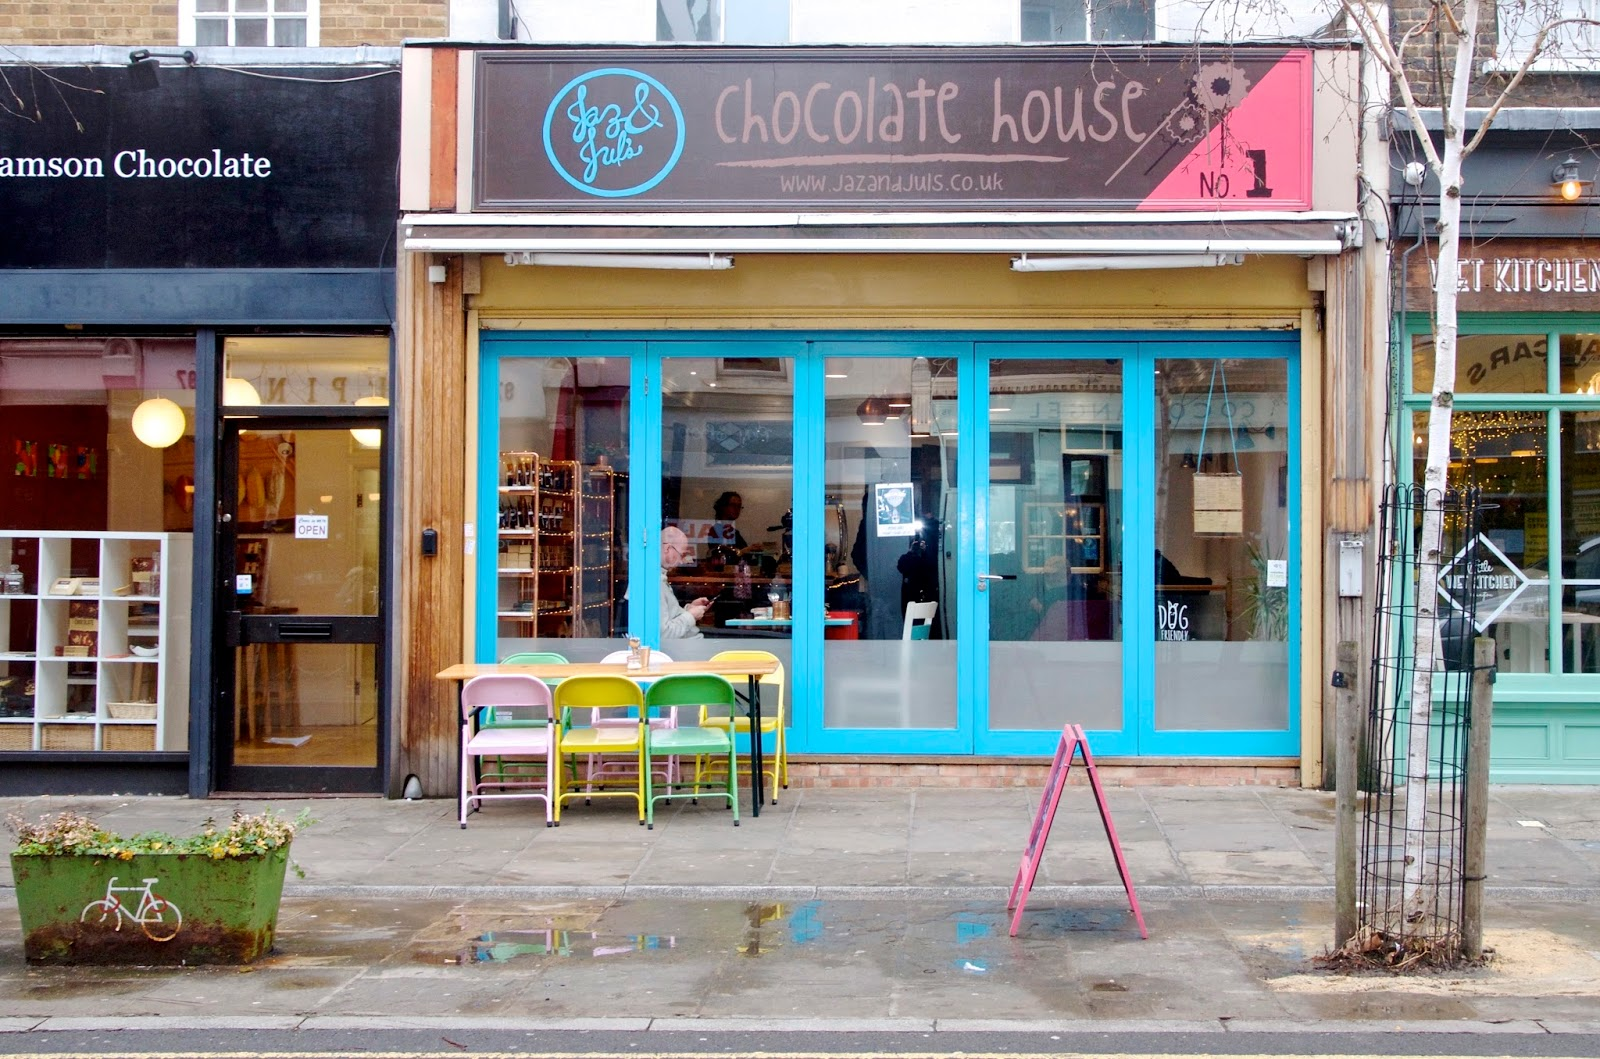 Jaz & Jul's Chocolate House Cafe